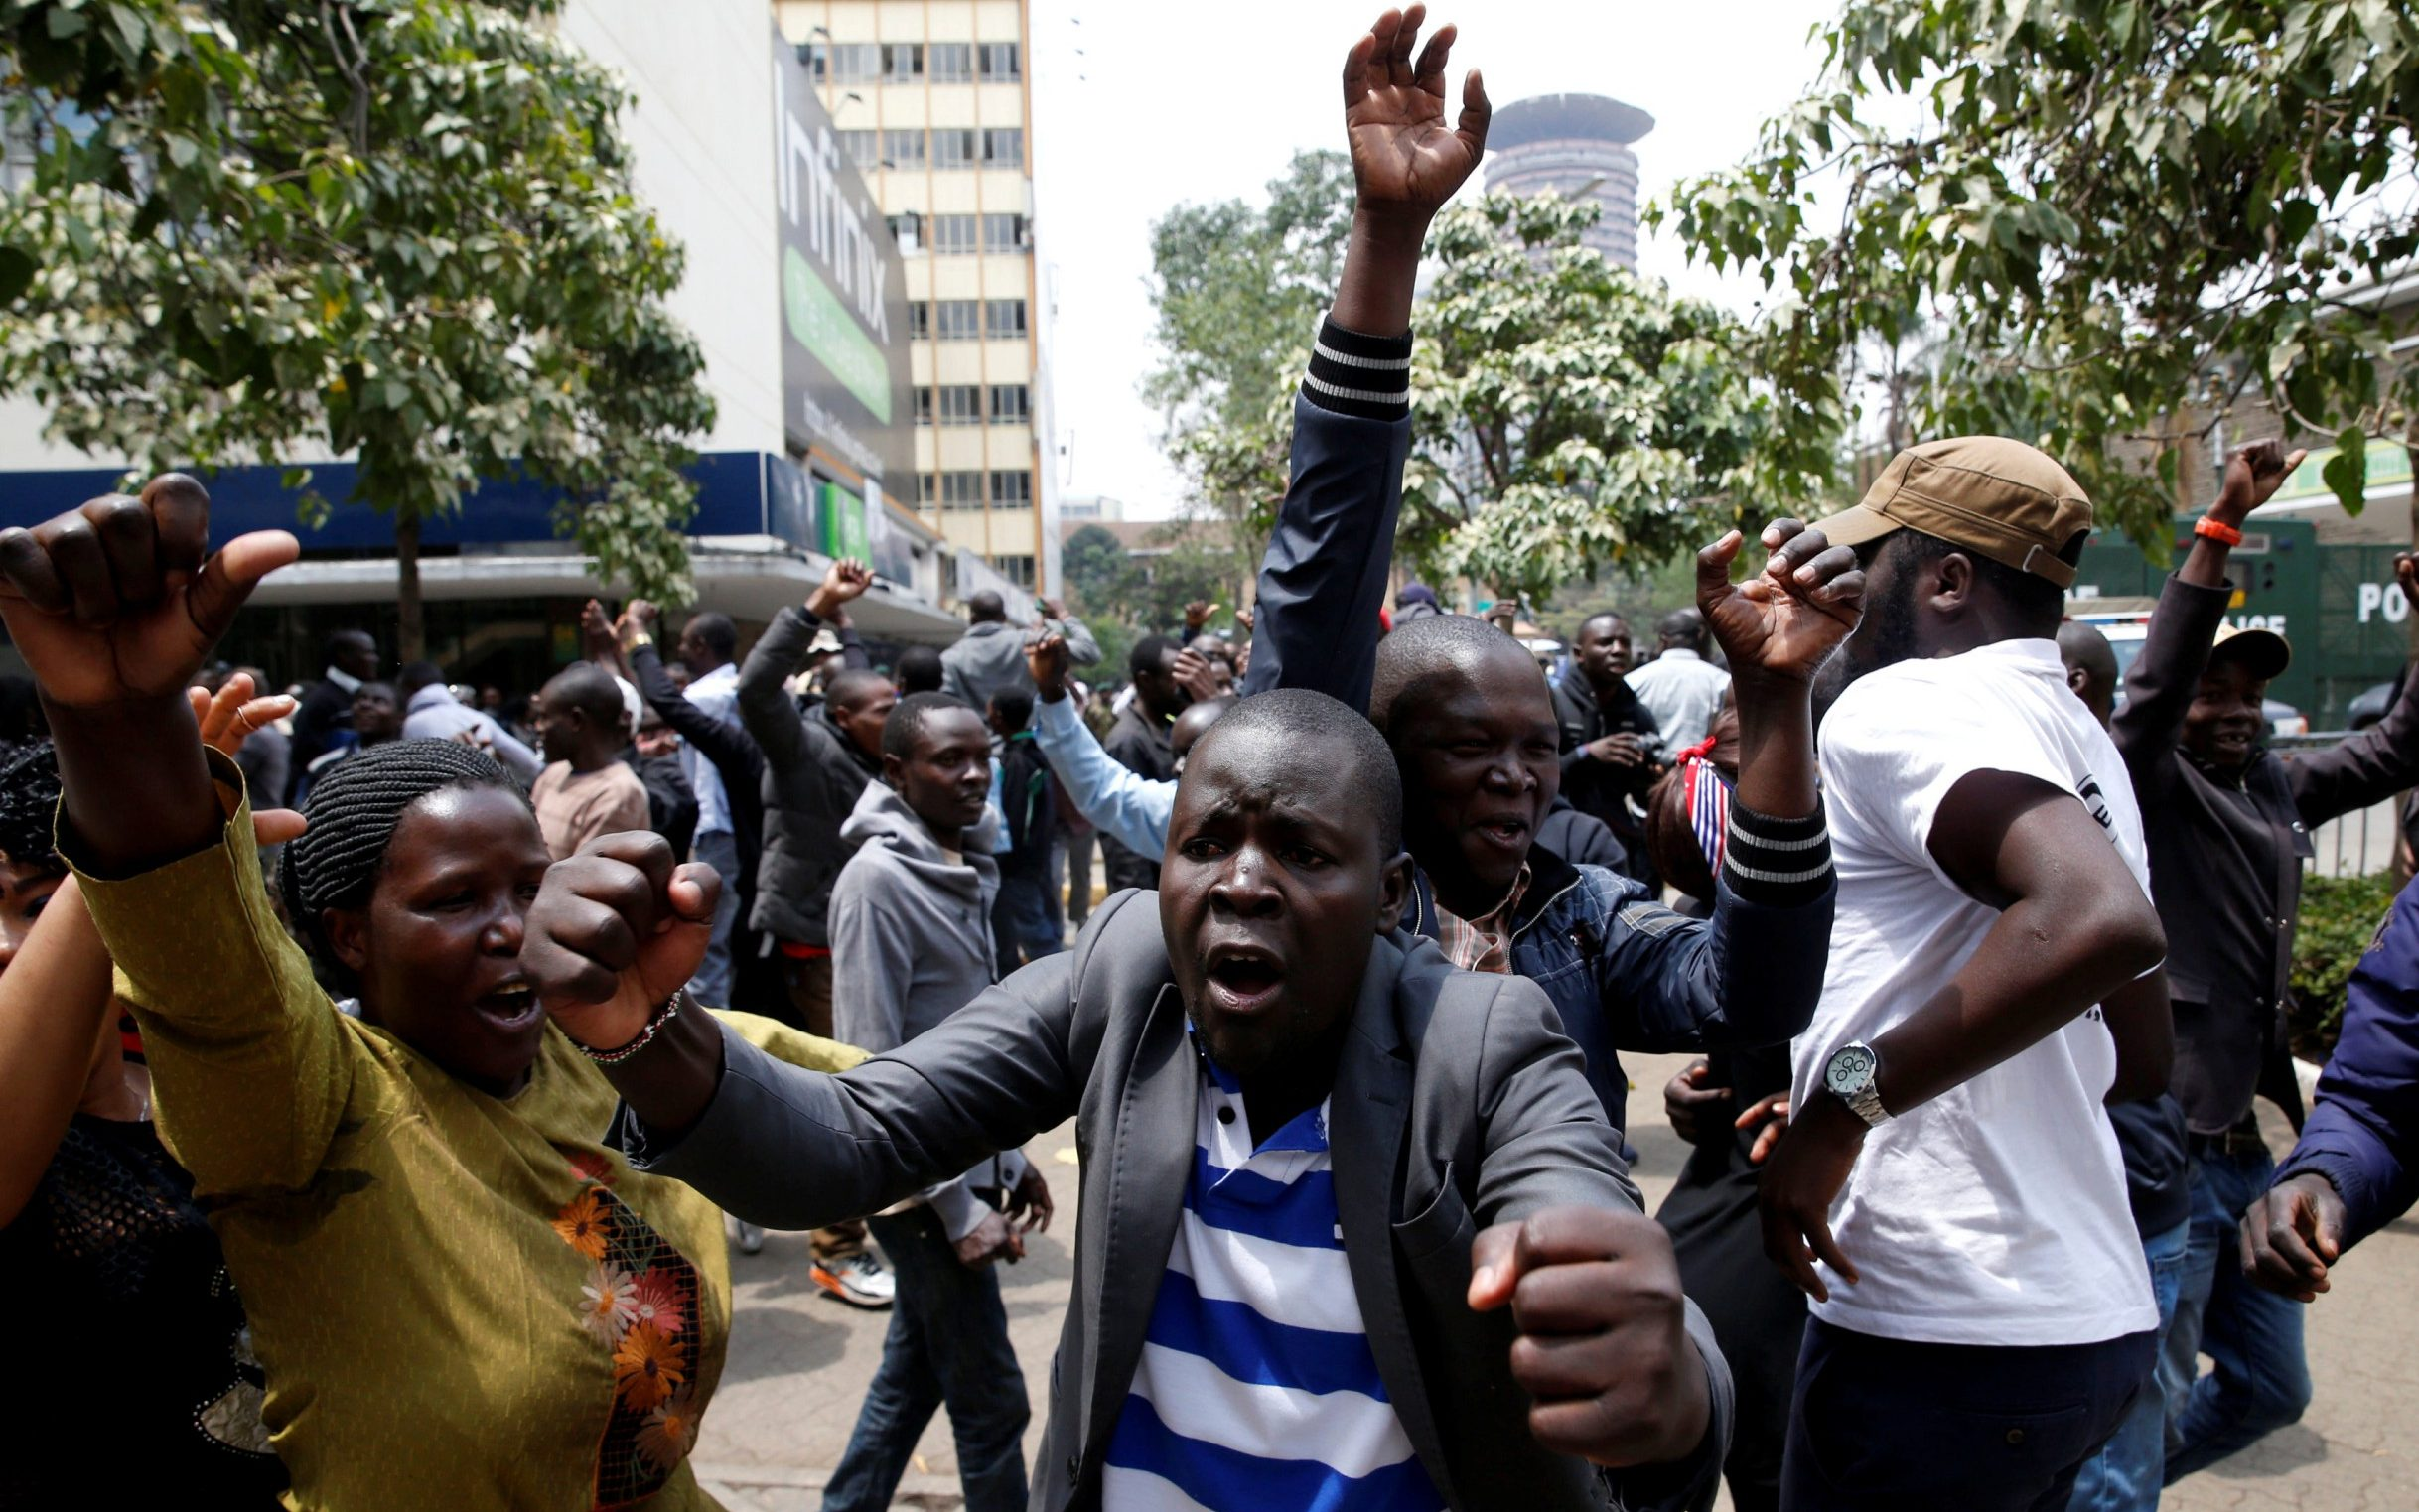 Celebrations in downtown Nairobi after a re-election is called